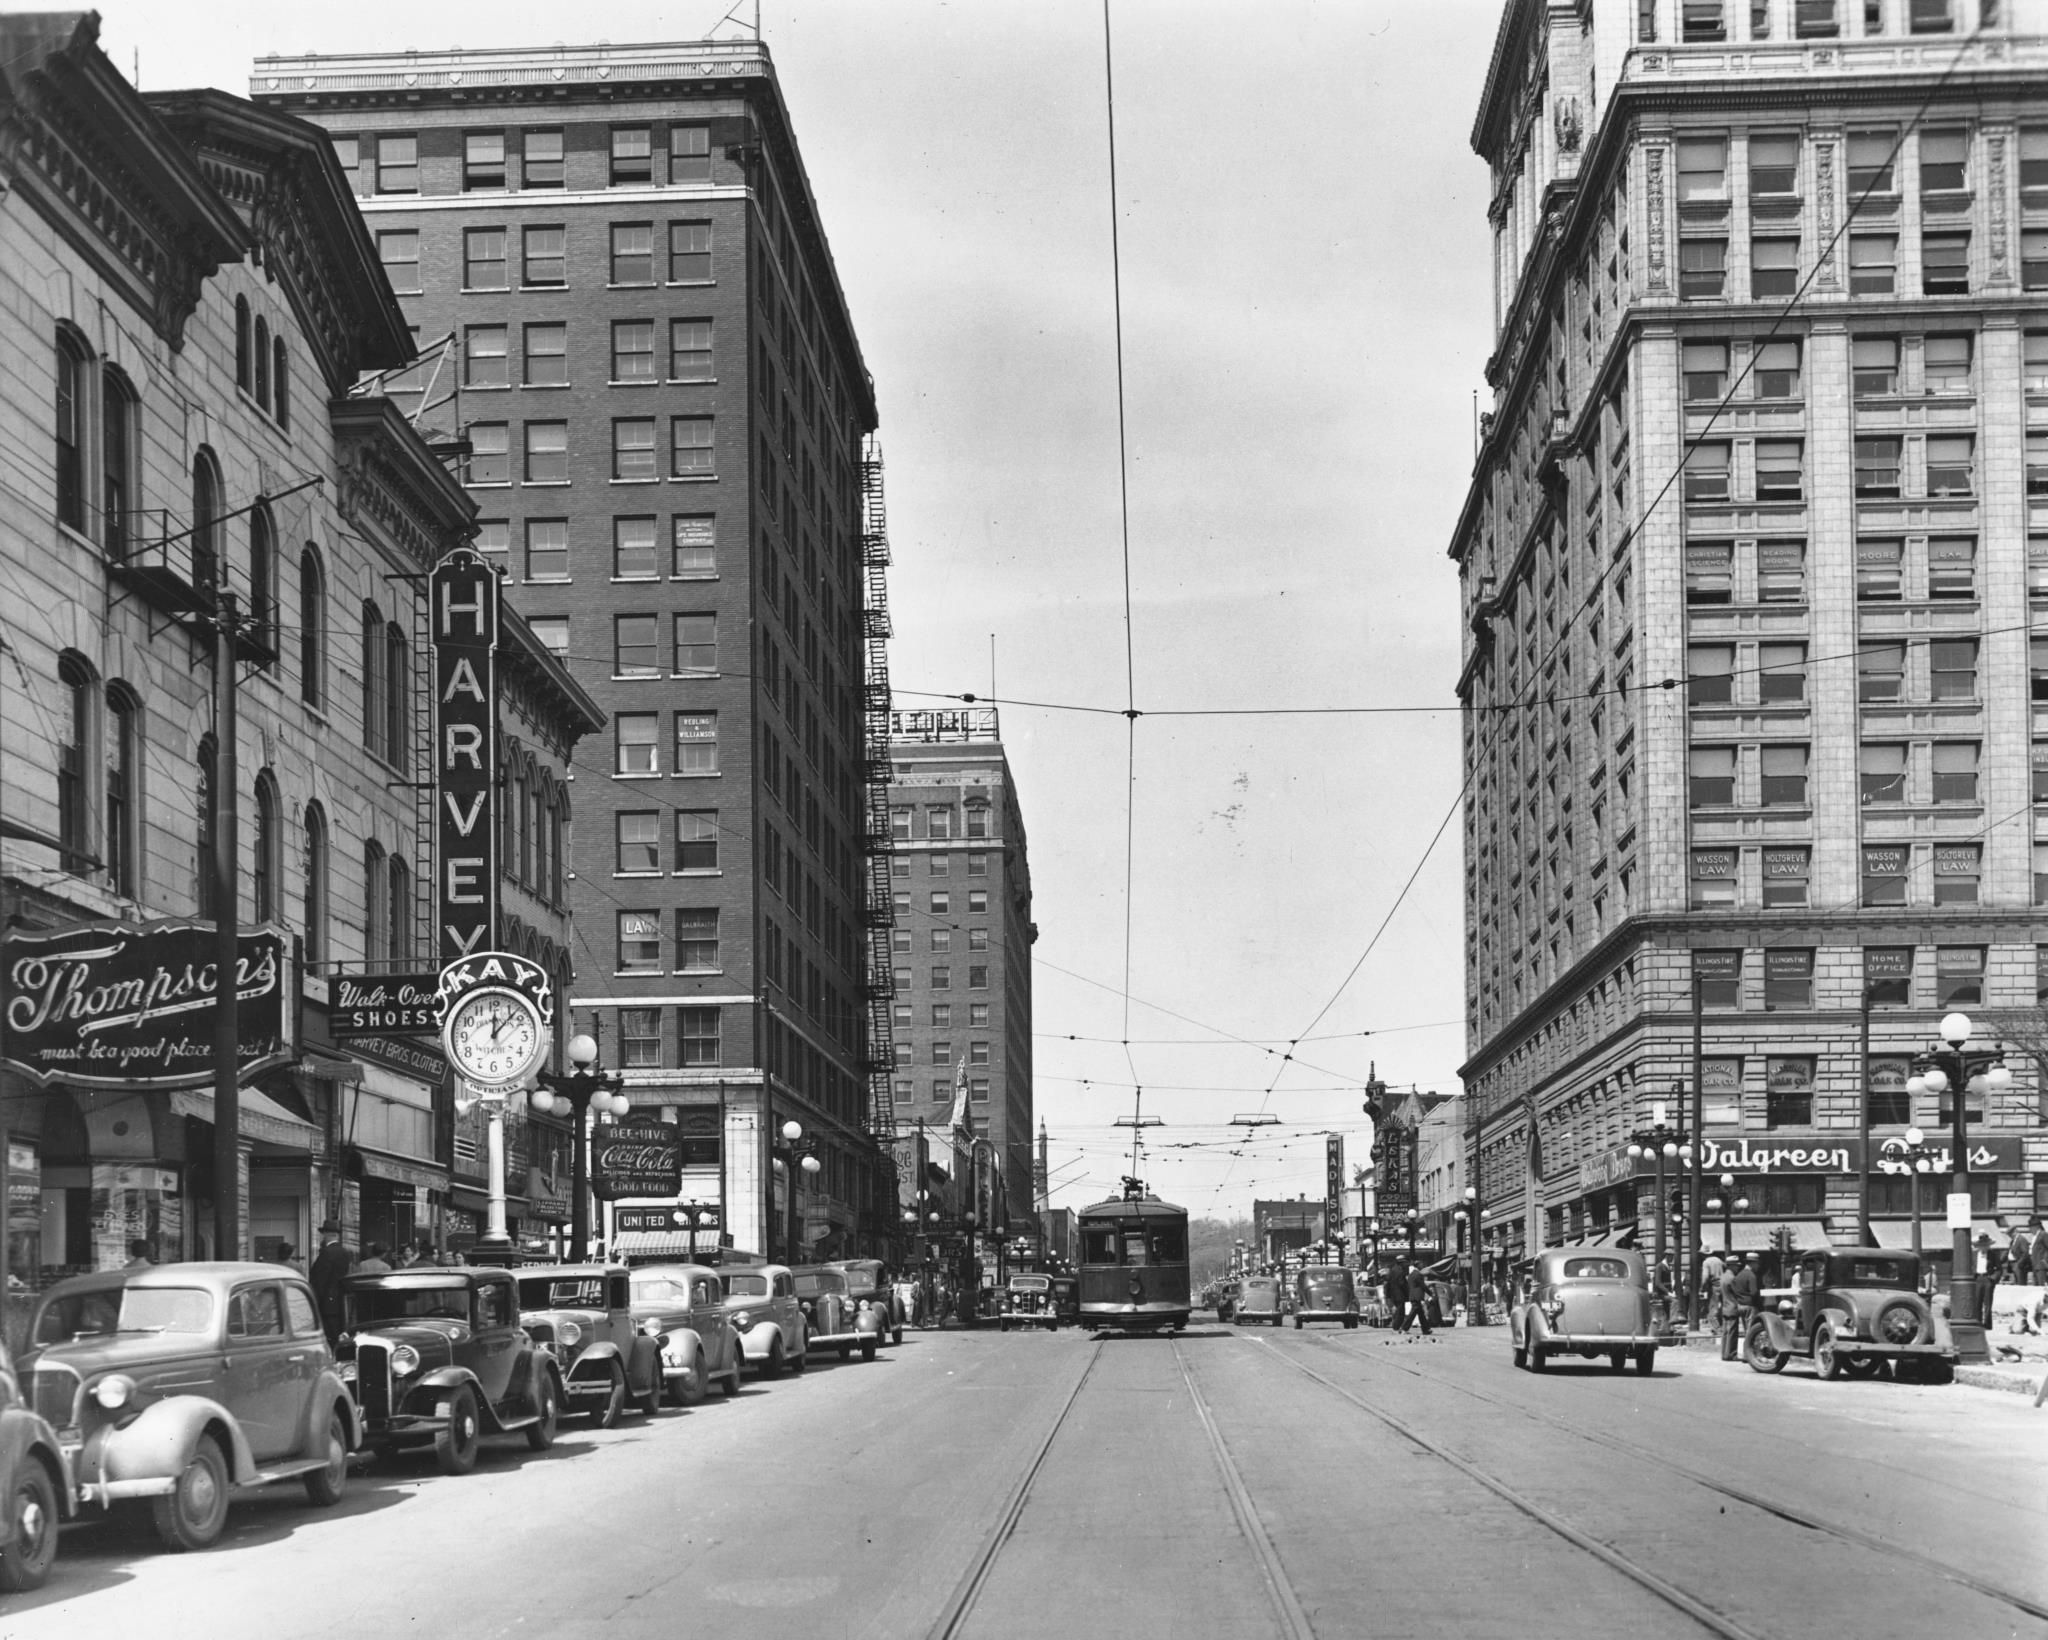 Downtown Peoria during the 1920s.